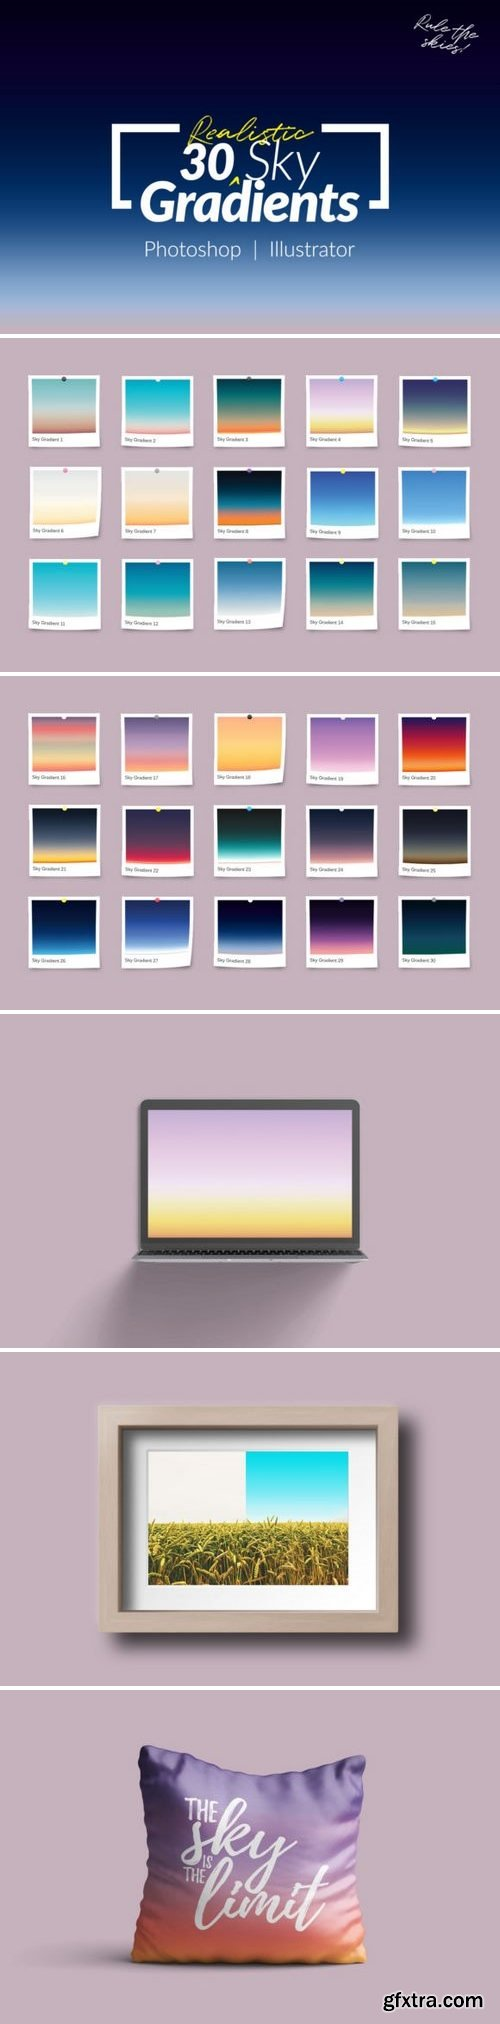 CF - 30 Realistic Sky Gradients for Photoshop & Illustrator 746626